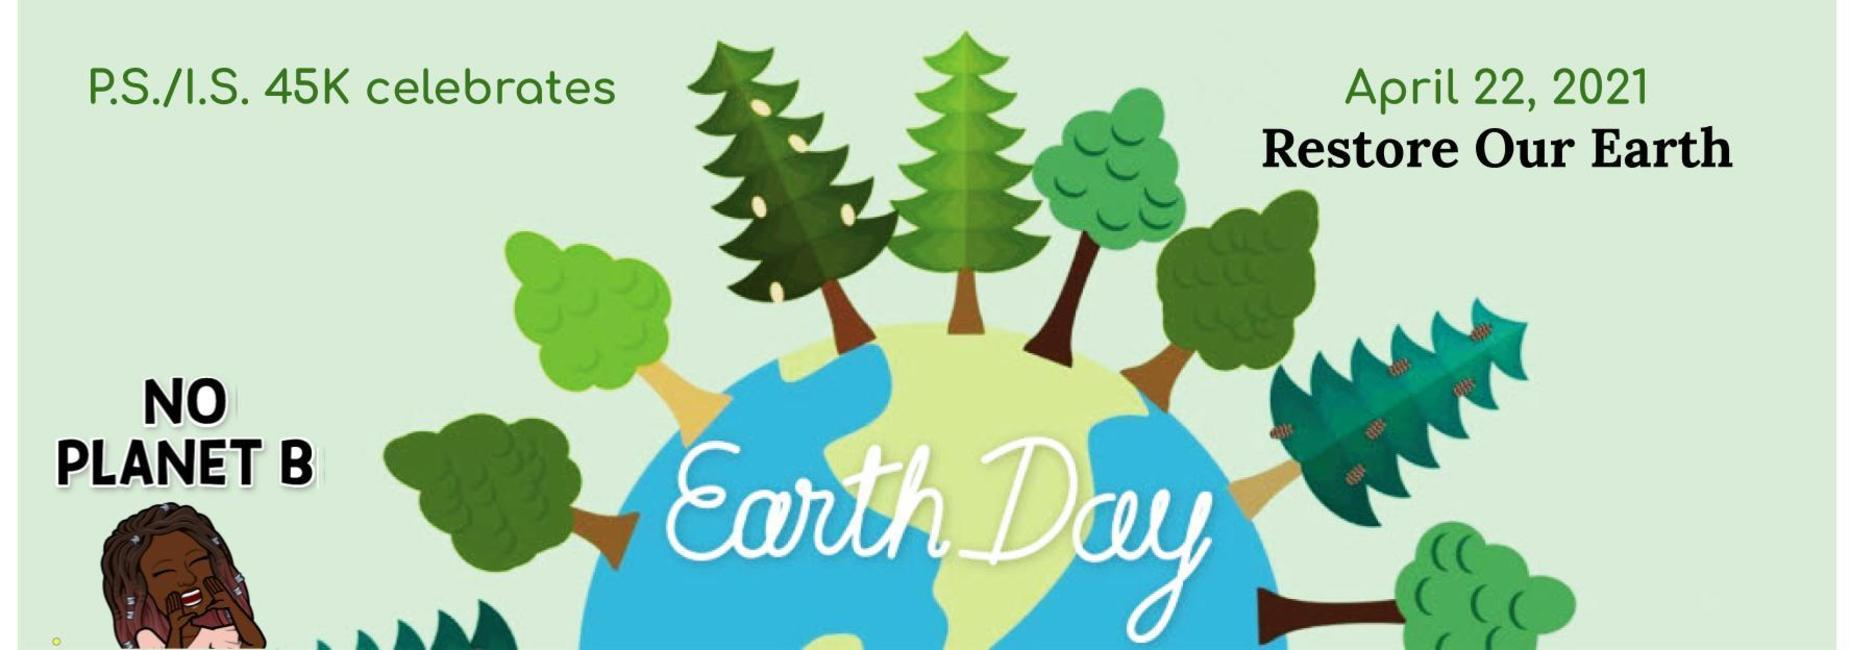 P.S./I.S. 45K Celebrates Earth Day on April 22, 2021. Restore Our Earth. No Planet B!